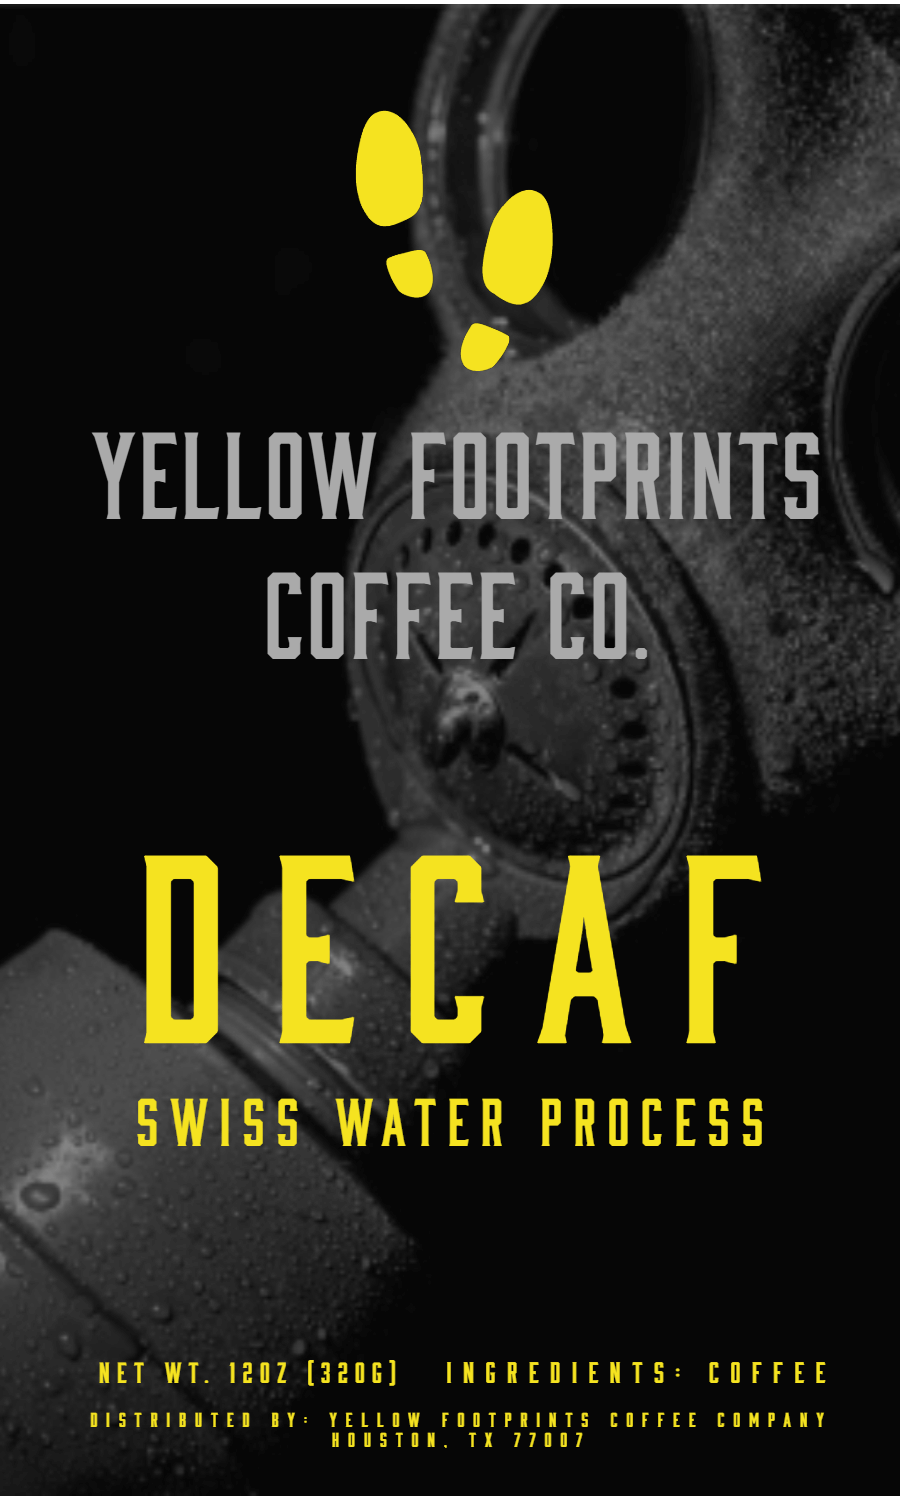 Decaf from Yellow Footprints Coffee Company